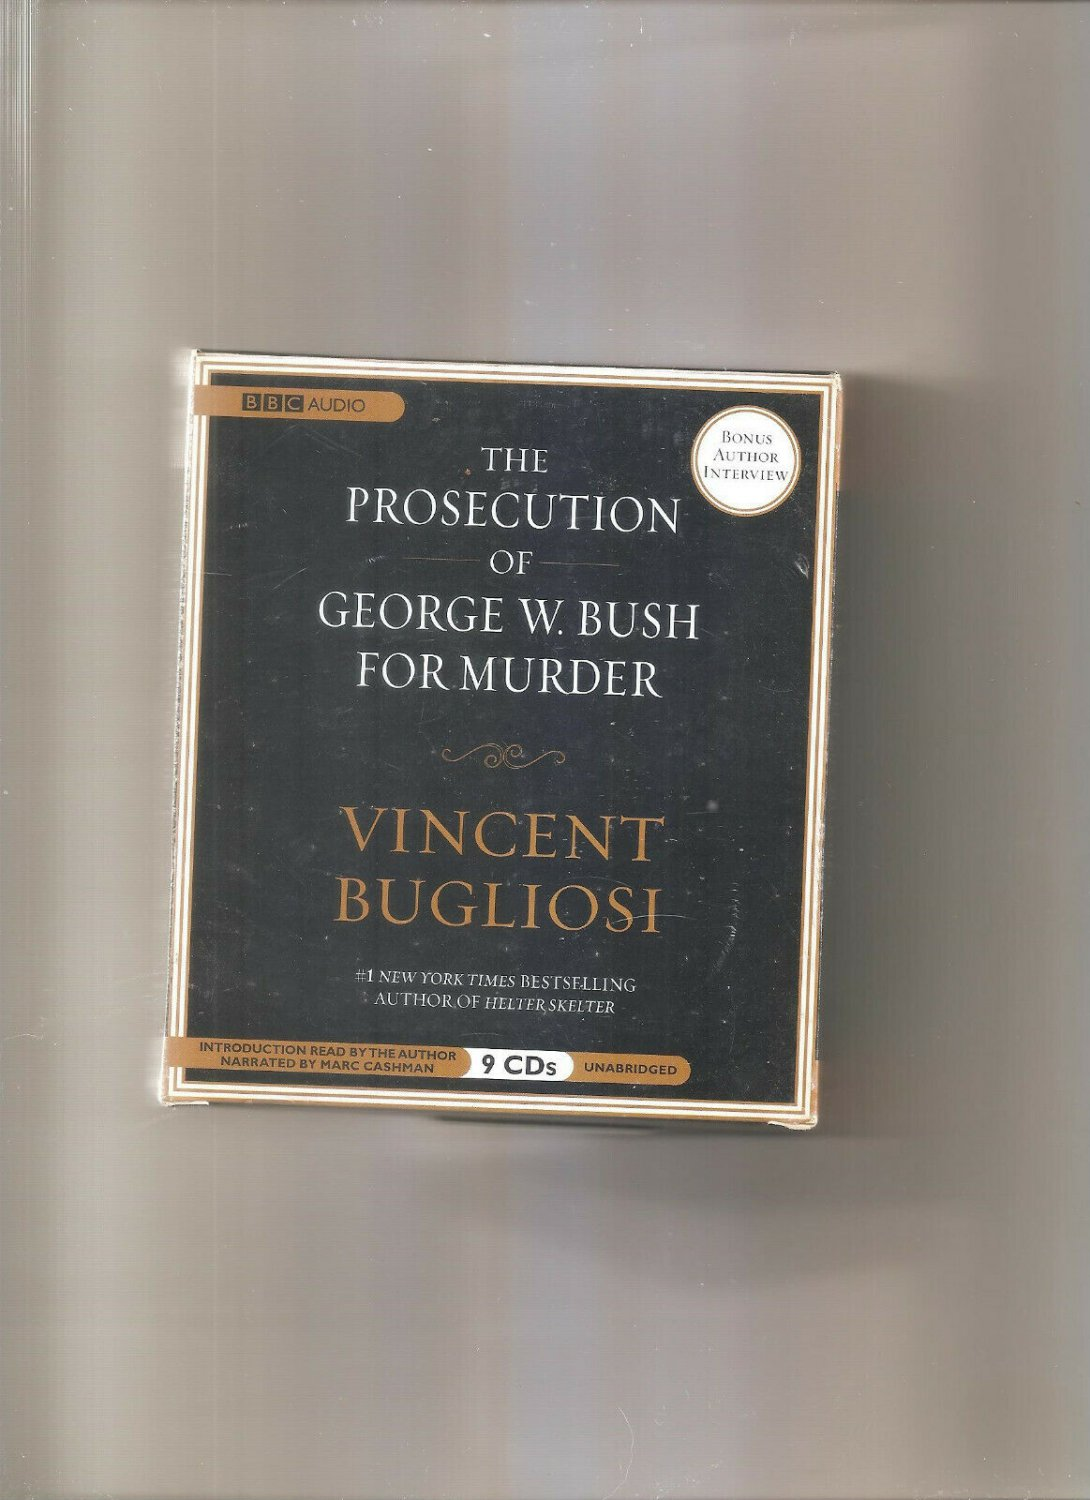 The Prosecution of George W. Bush for Murder by Vincent Bugliosi (2008, CD, Unabridged)